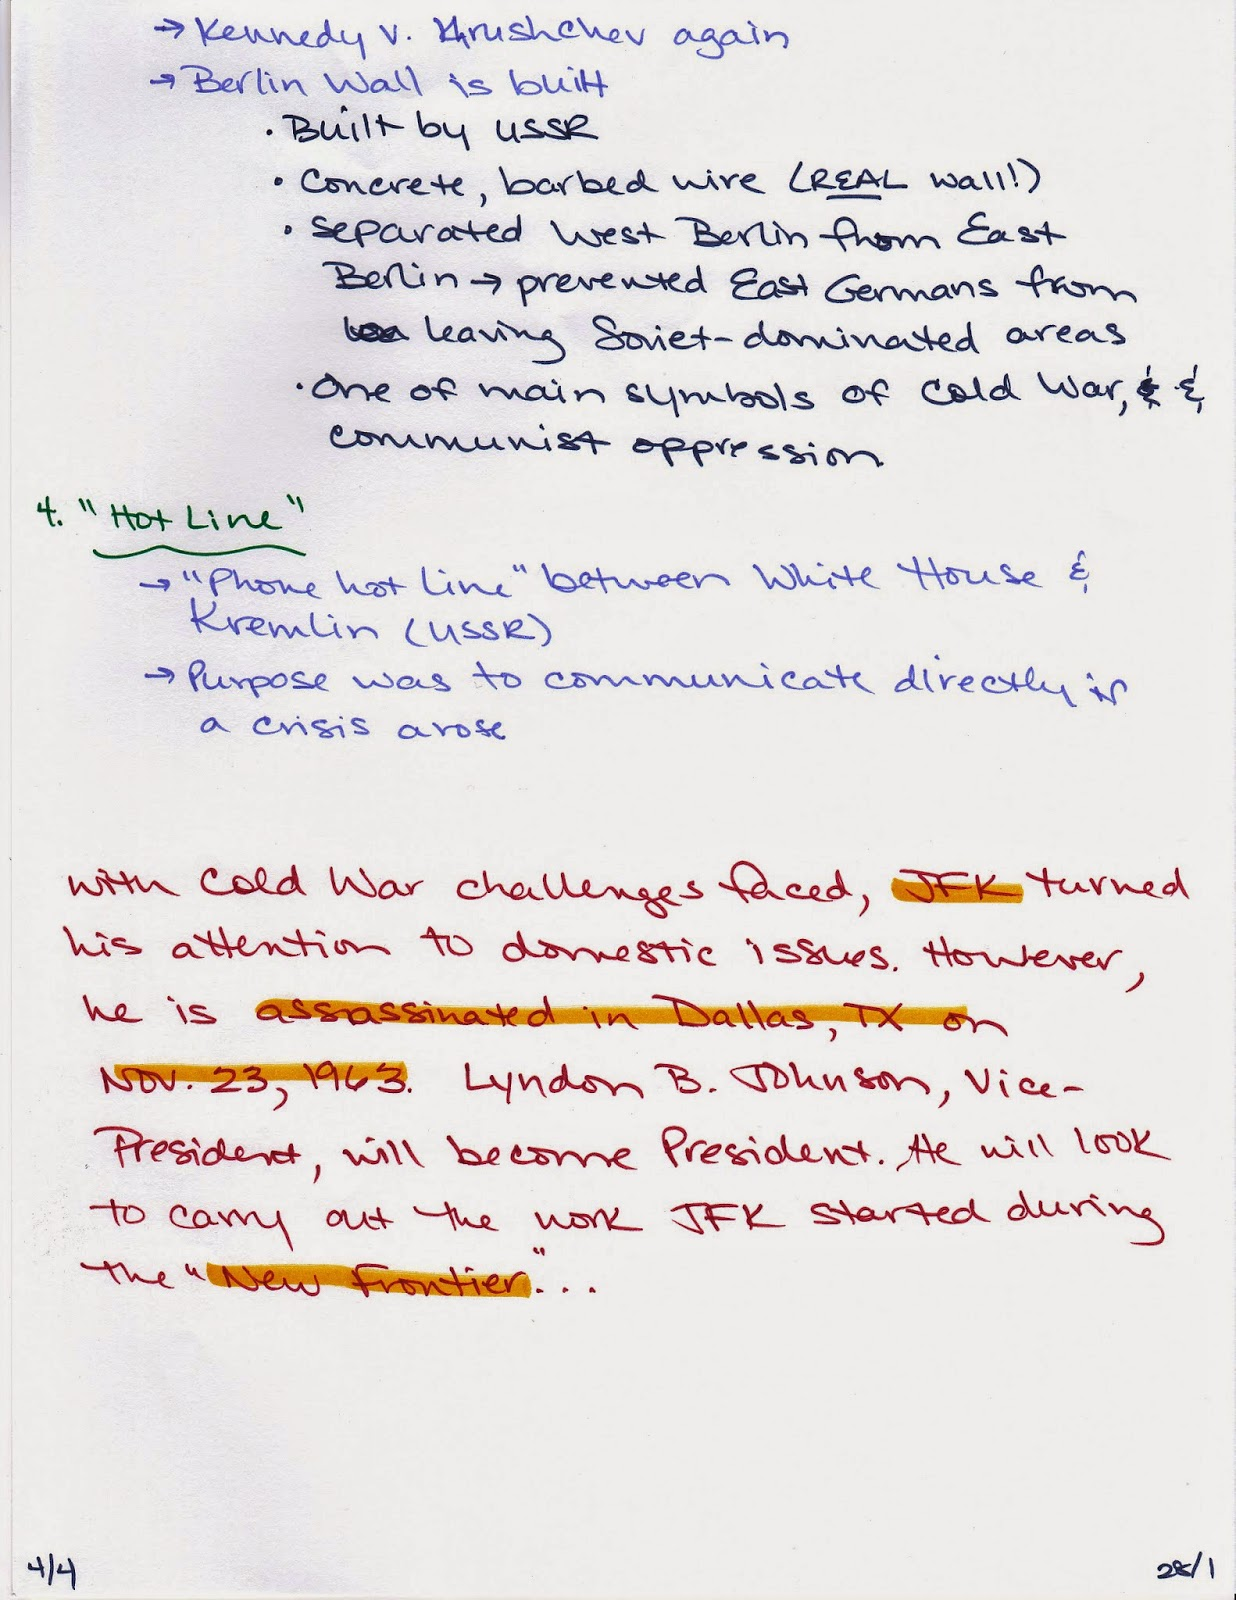 chapter 2 us history notes The british victories prompted the iroquois indians to support them this agreement gave british native american allies to balance those of france 1759- british forces defeated the french at quebec winning the war the two nations signed the treaty of paris in 1763 france gave up canada and all of .